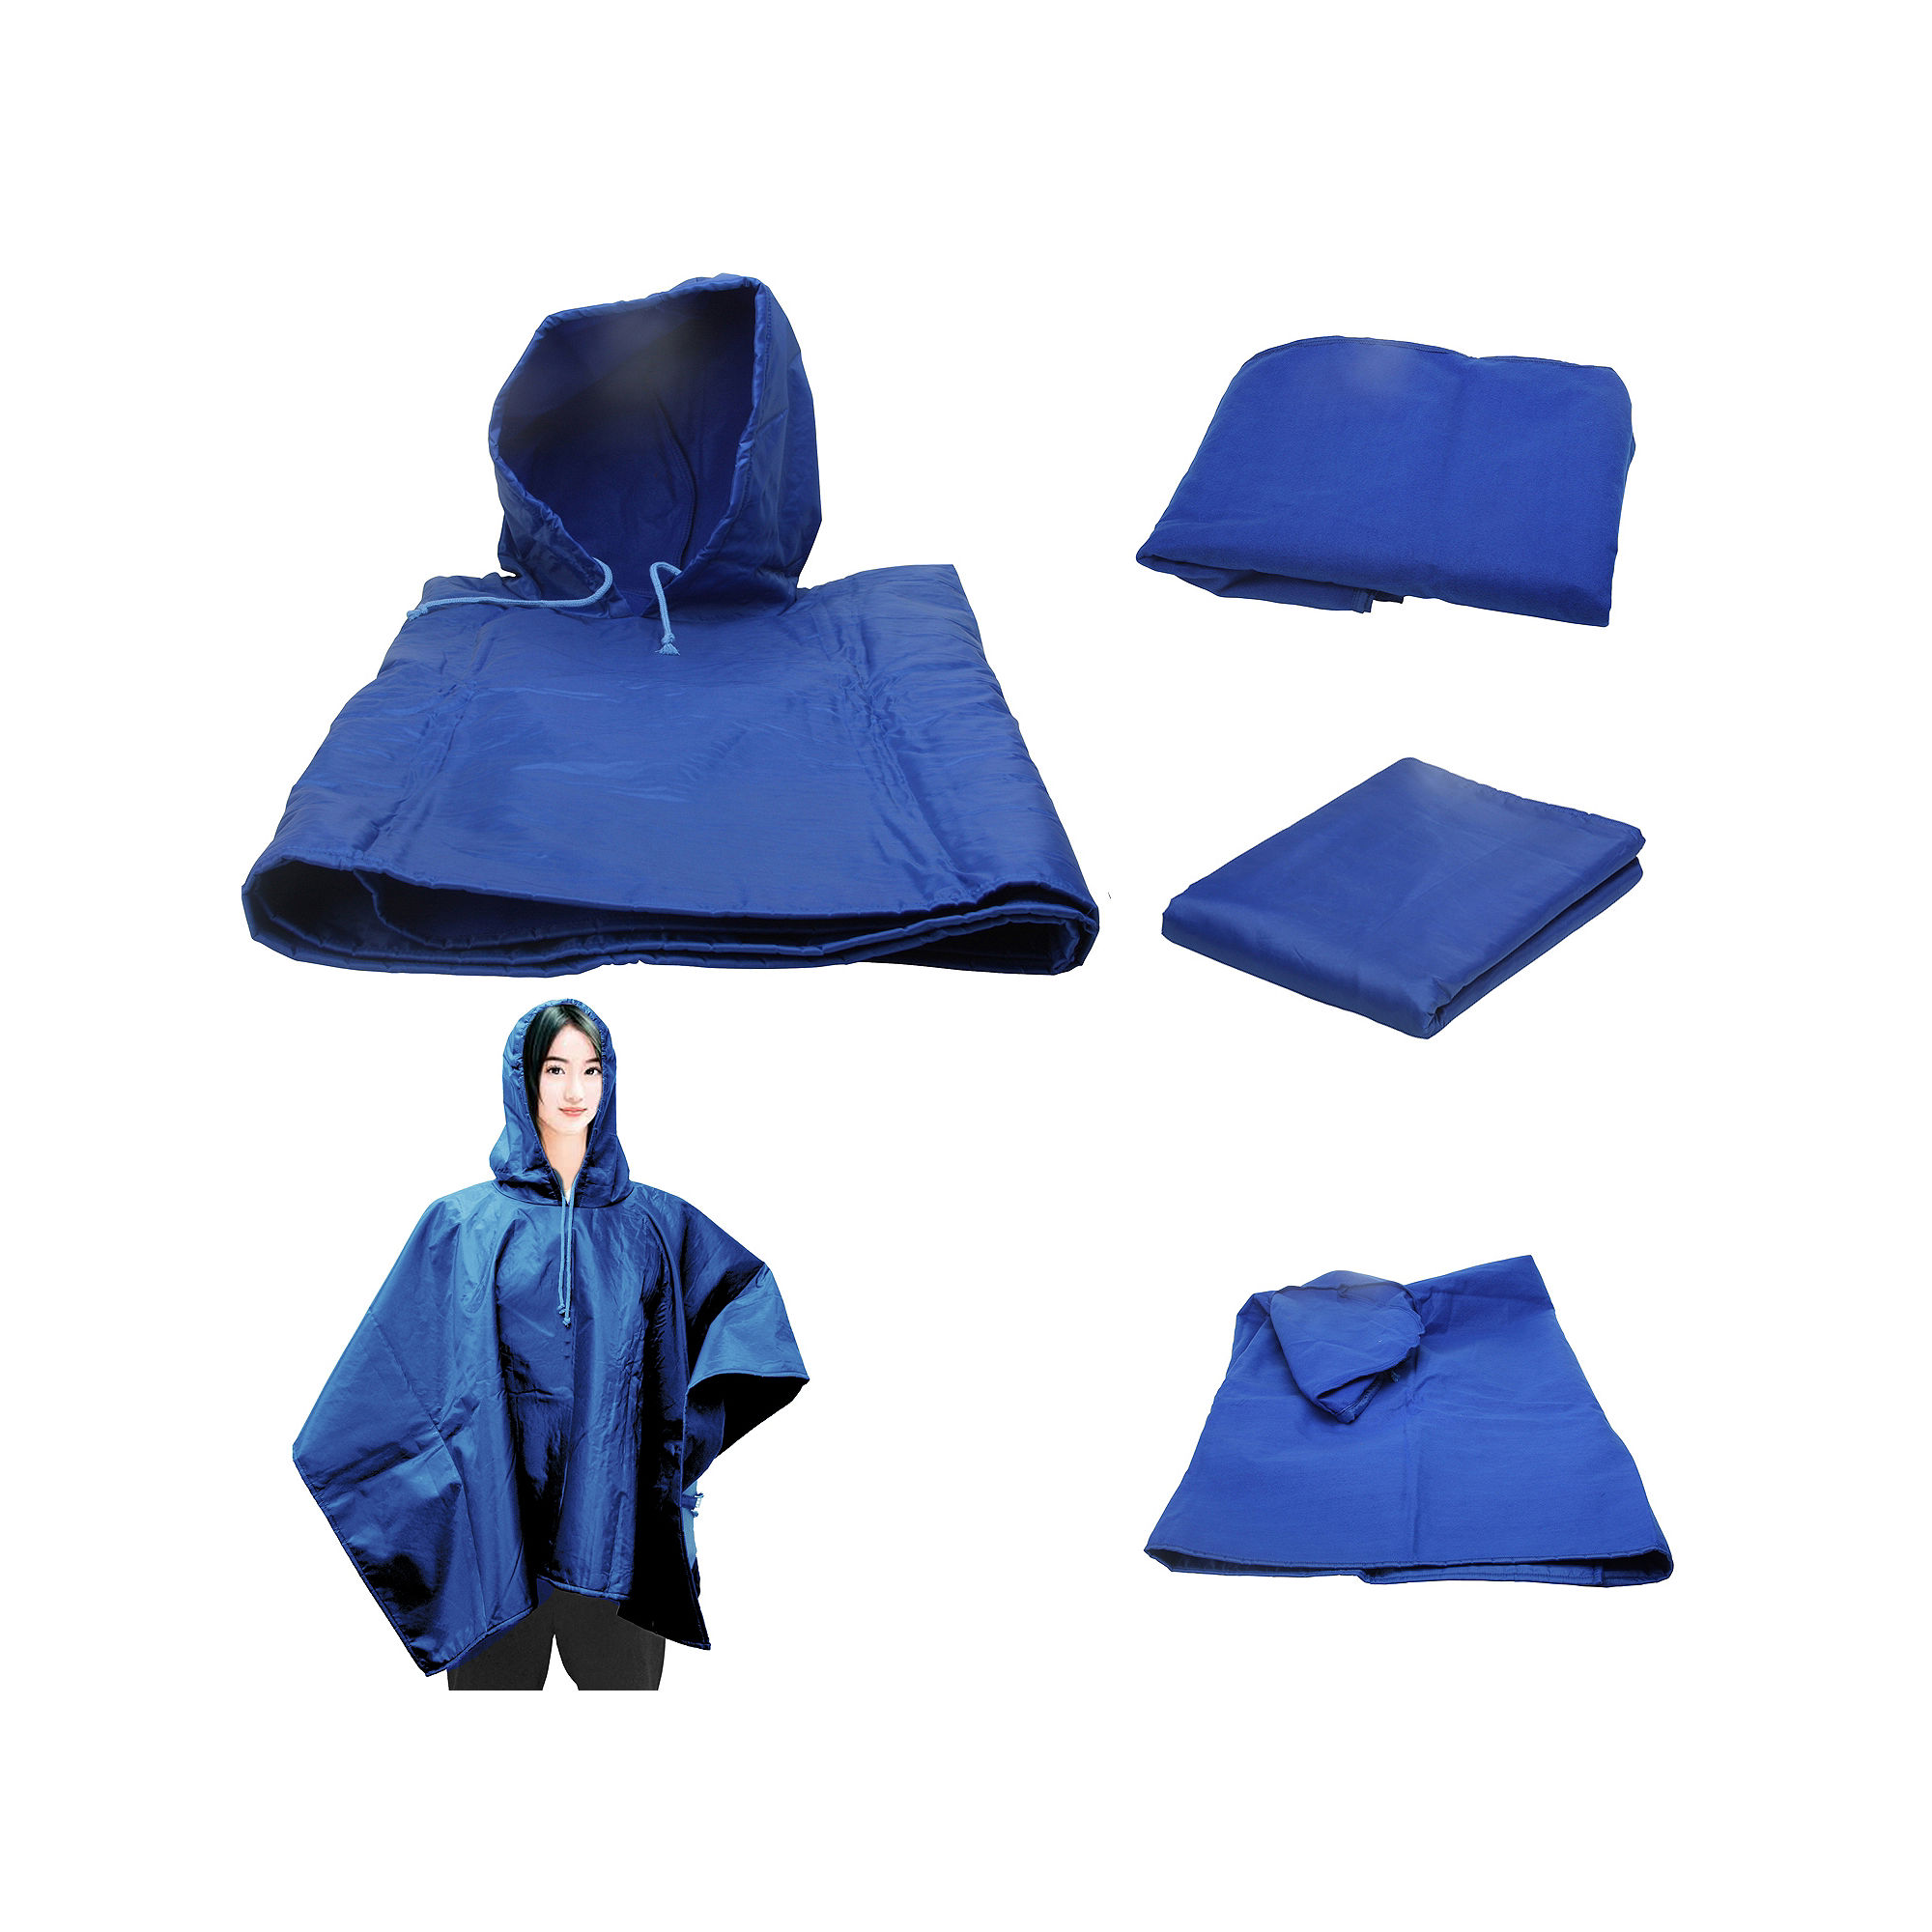 Natico 4 in 1 Travel Blanket